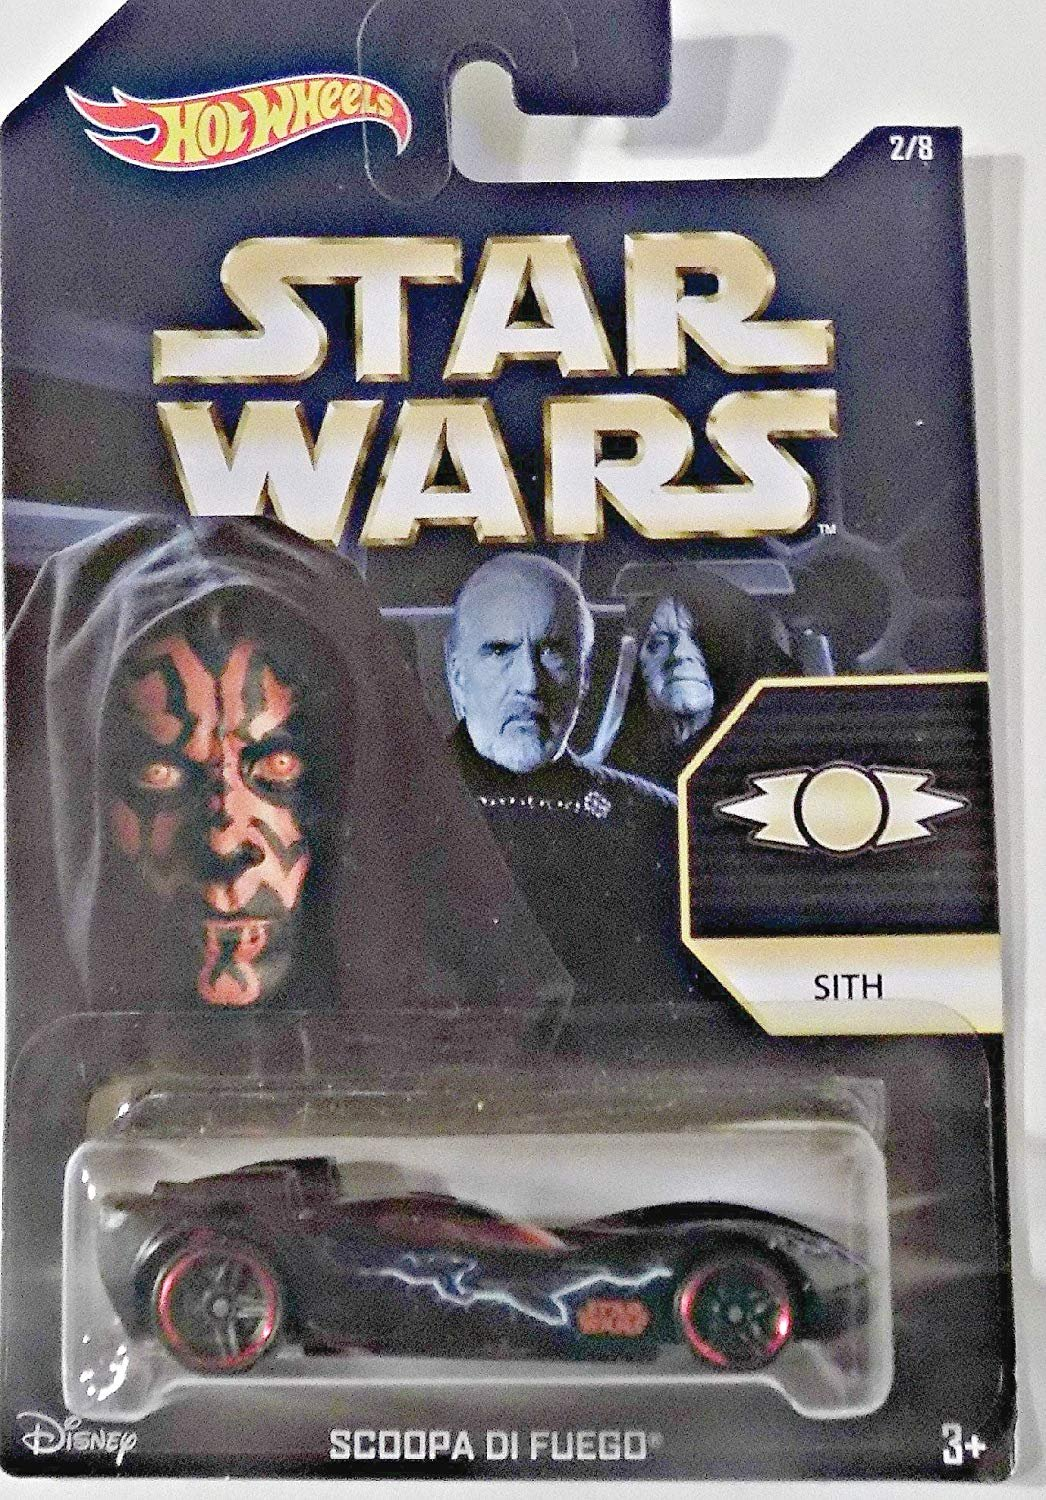 Hot Wheels, Star Wars, Exclusive Sith (Darth Maul) Scoopa Di Fuego Die-Cast Car 2/8